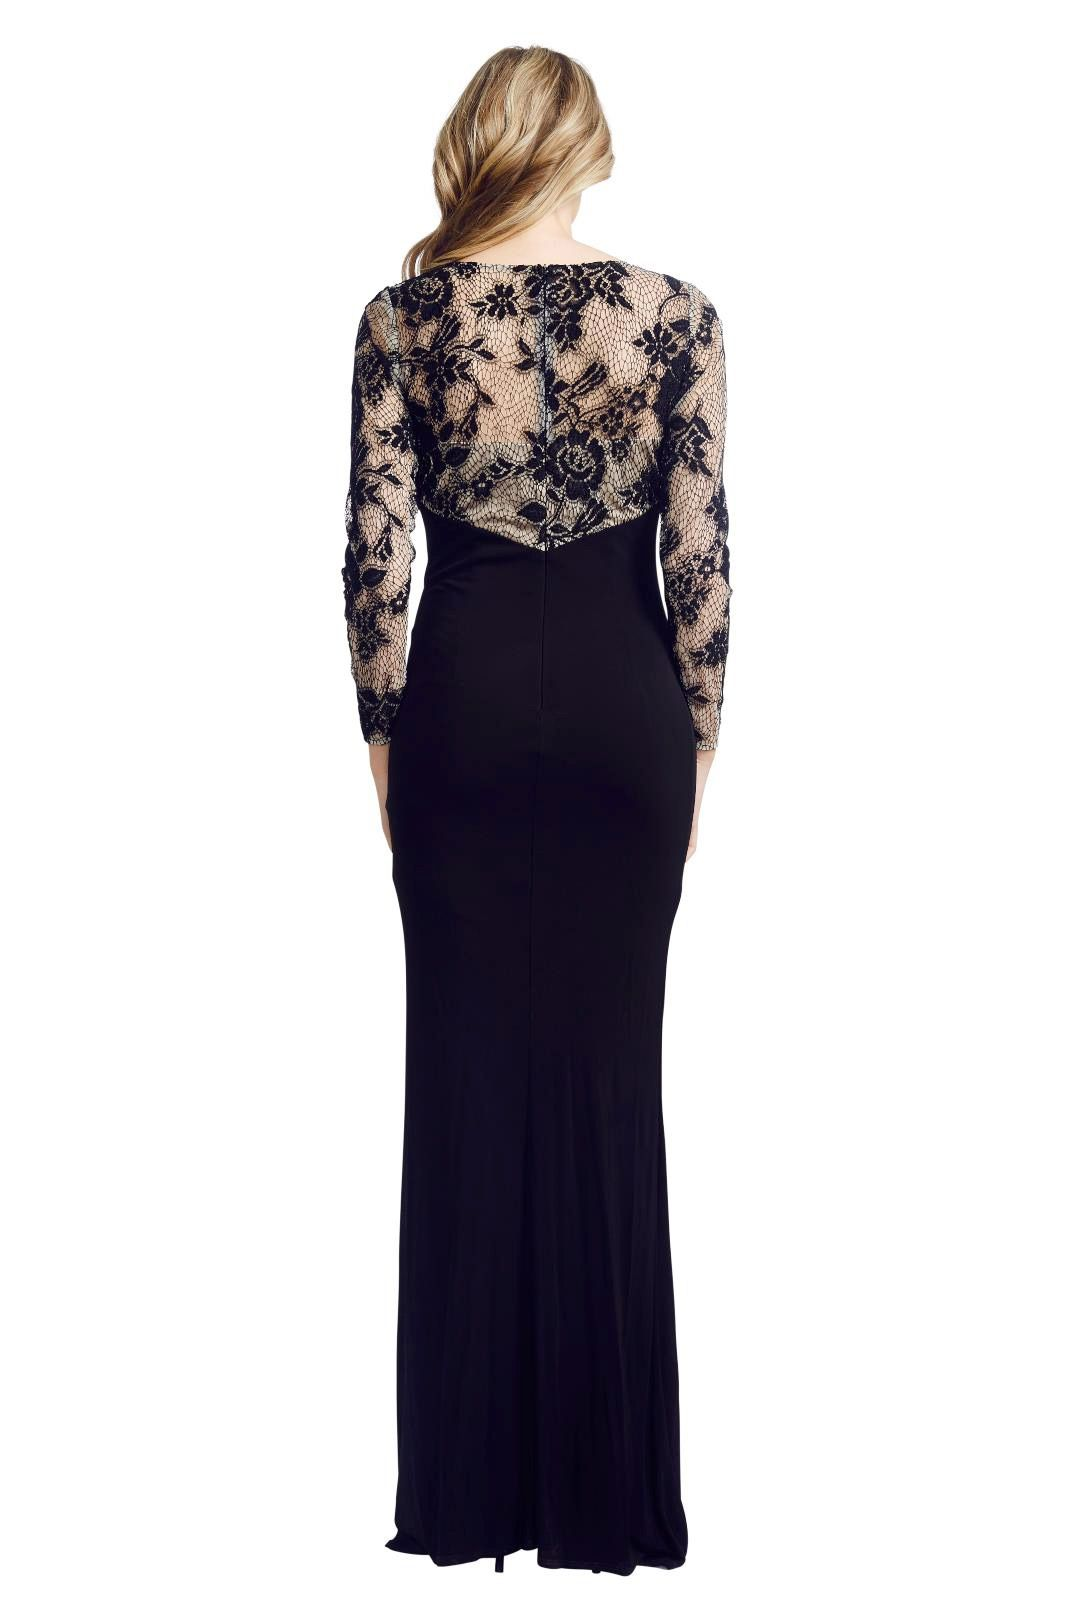 David Meister - Illusion Lace Gown - Black - Back3